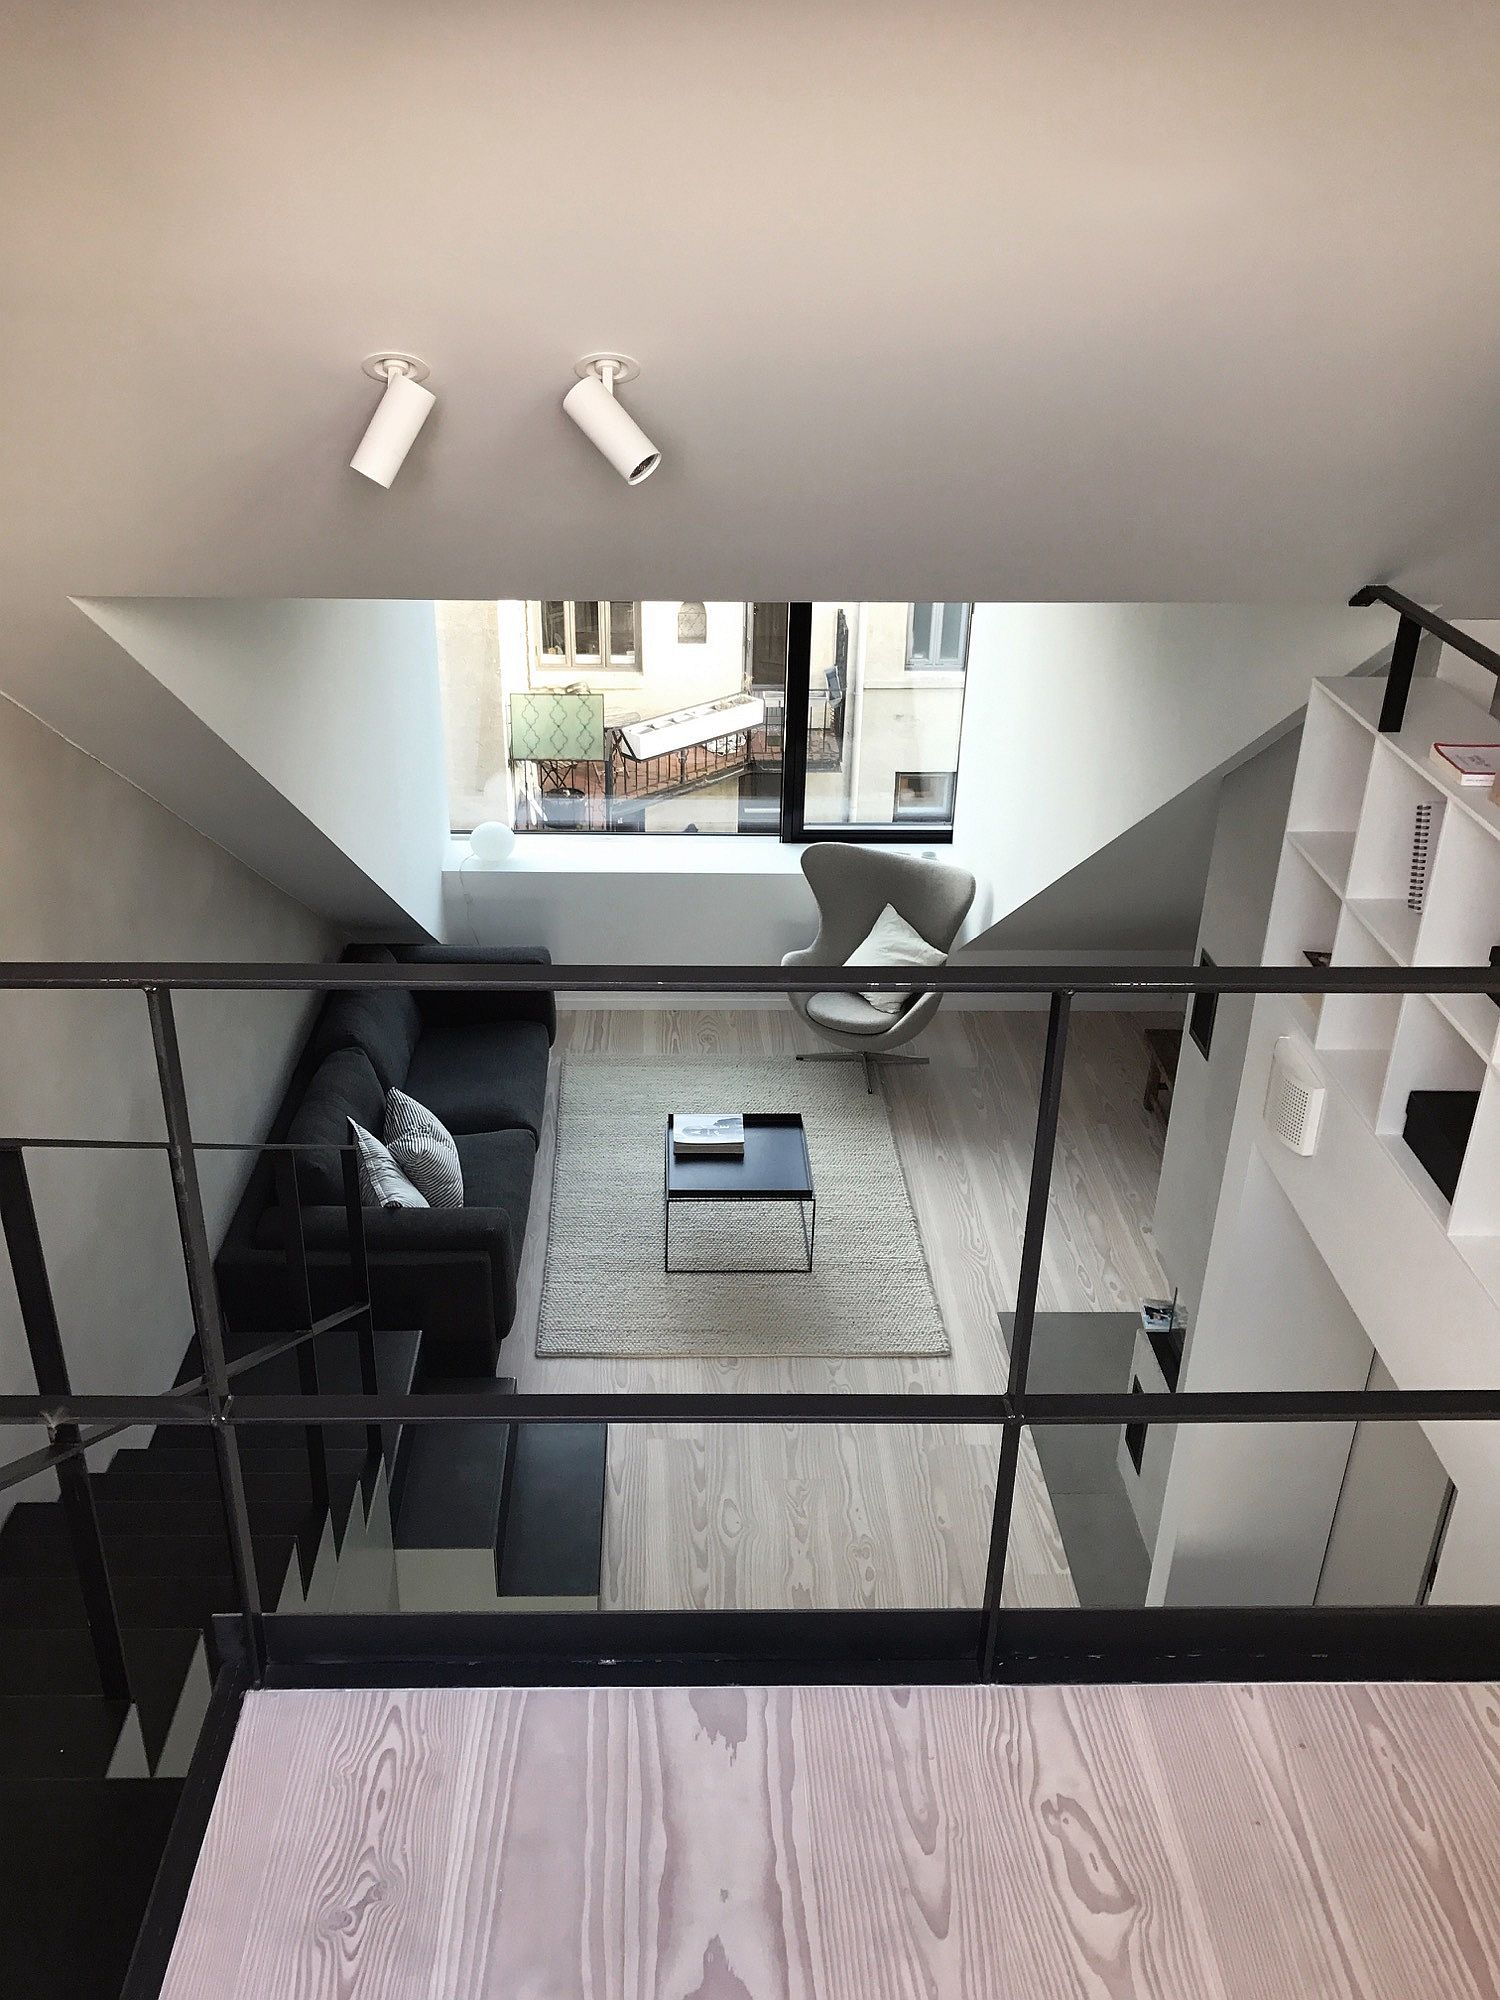 View of the living area from the upper level of the apartments